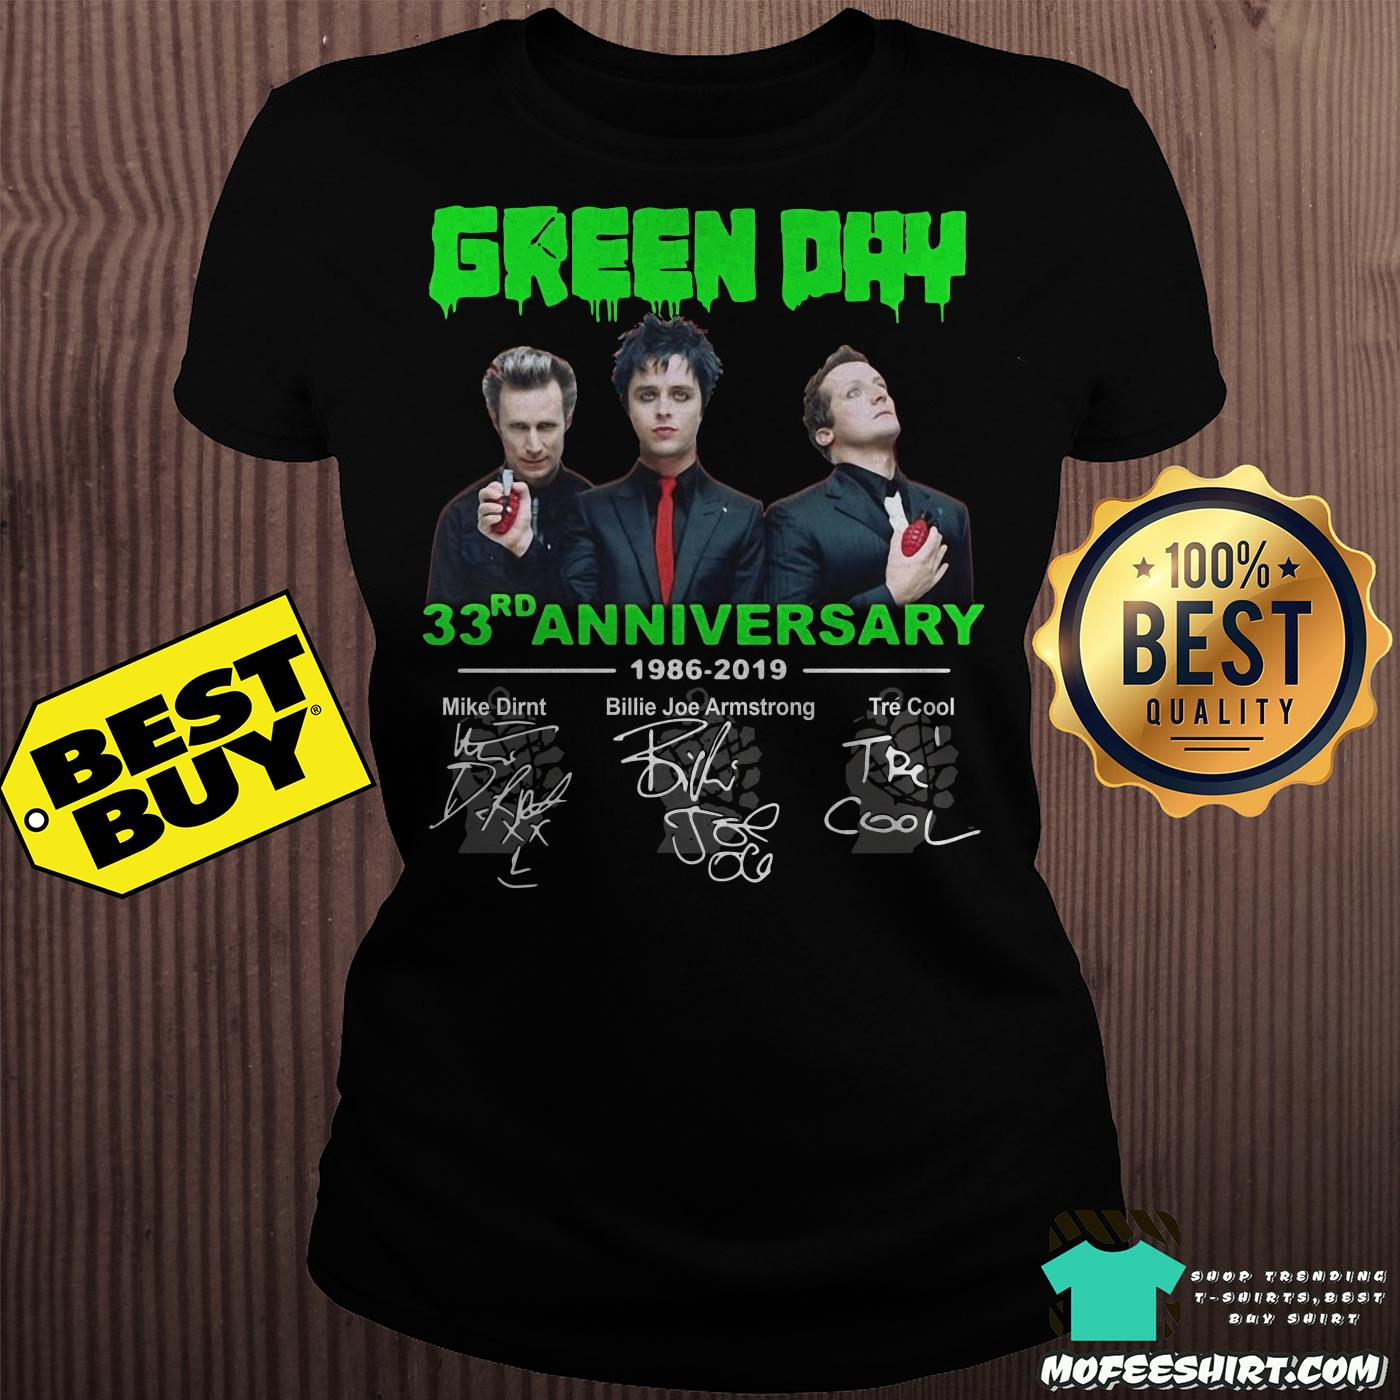 green day 33th anniversary 1986 2019 signatures ladies tee - Green Day 33rd Anniversary 1986-2019 signatures shirt